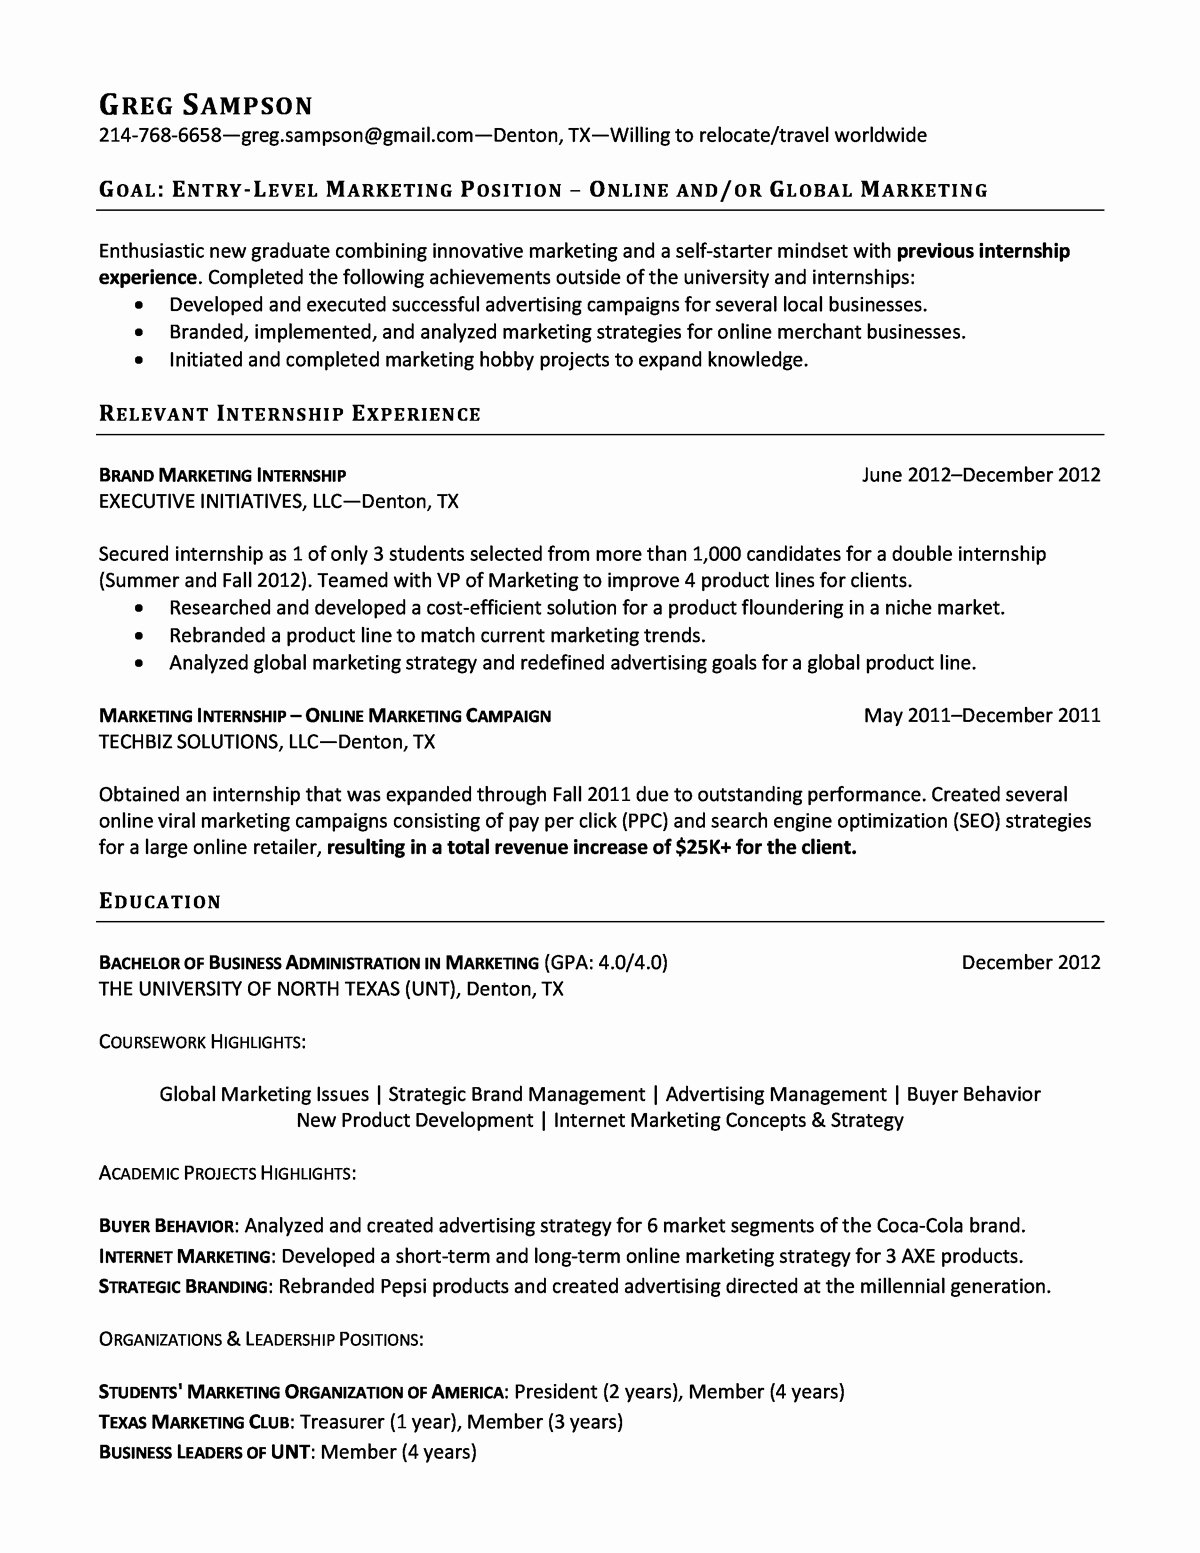 Entry Level Resume High School Luxury Entry Level Resume Samples High School Graduate for